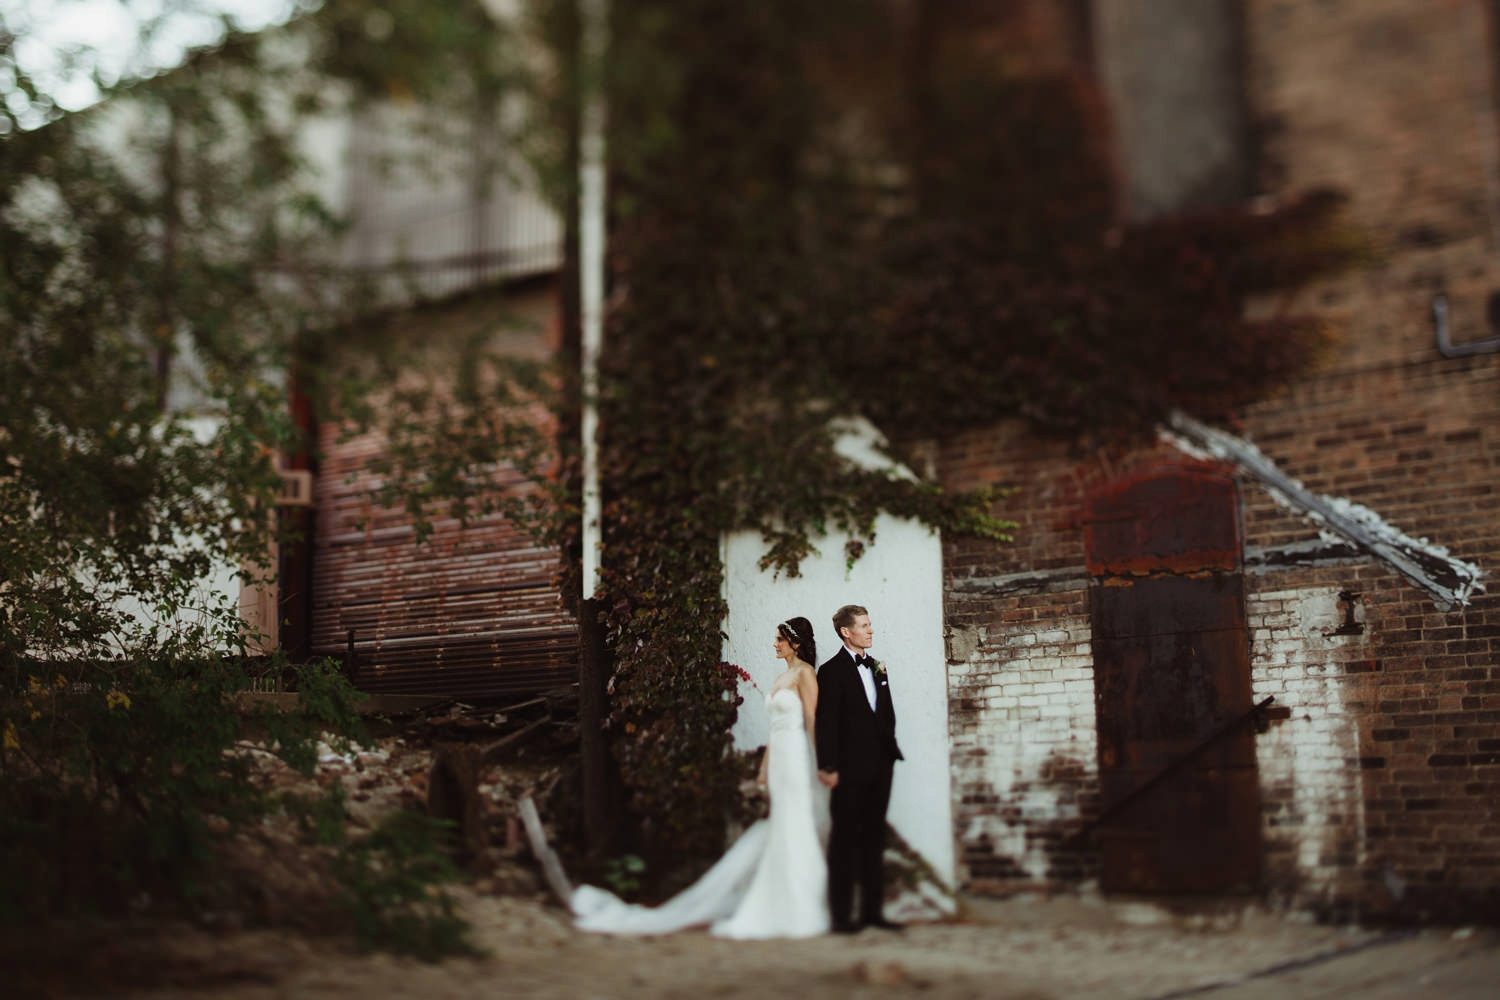 bride and groom surrounded by ivey in industrial alley